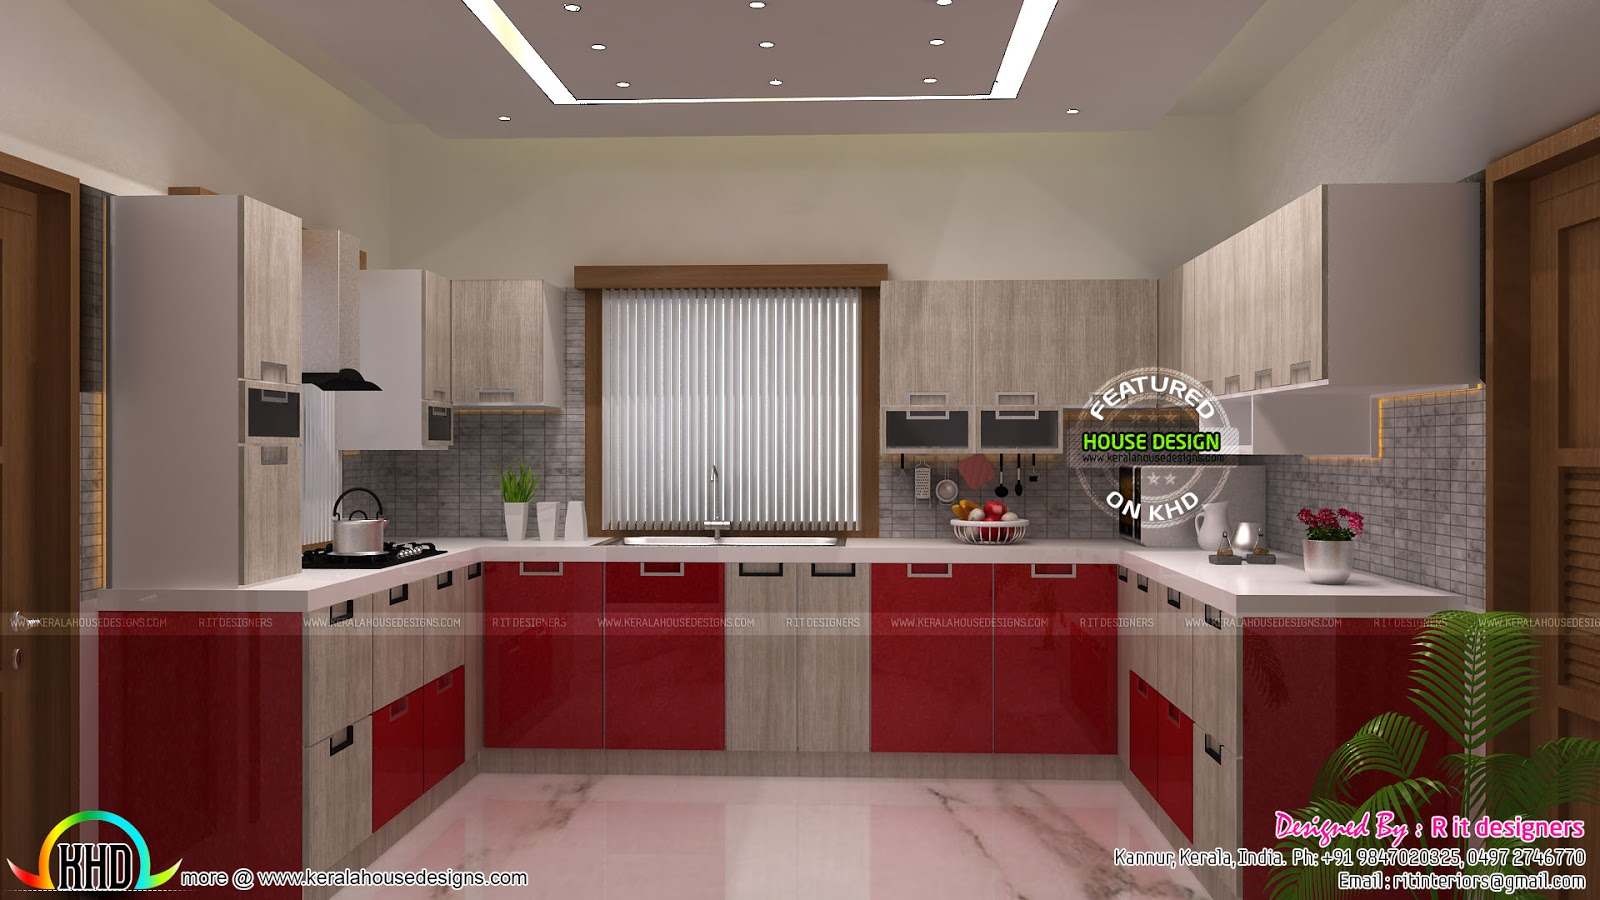 Modular kitchen dining bedroom interiors kerala home design and floor plans - Mobile homes kitchen designs ideas ...